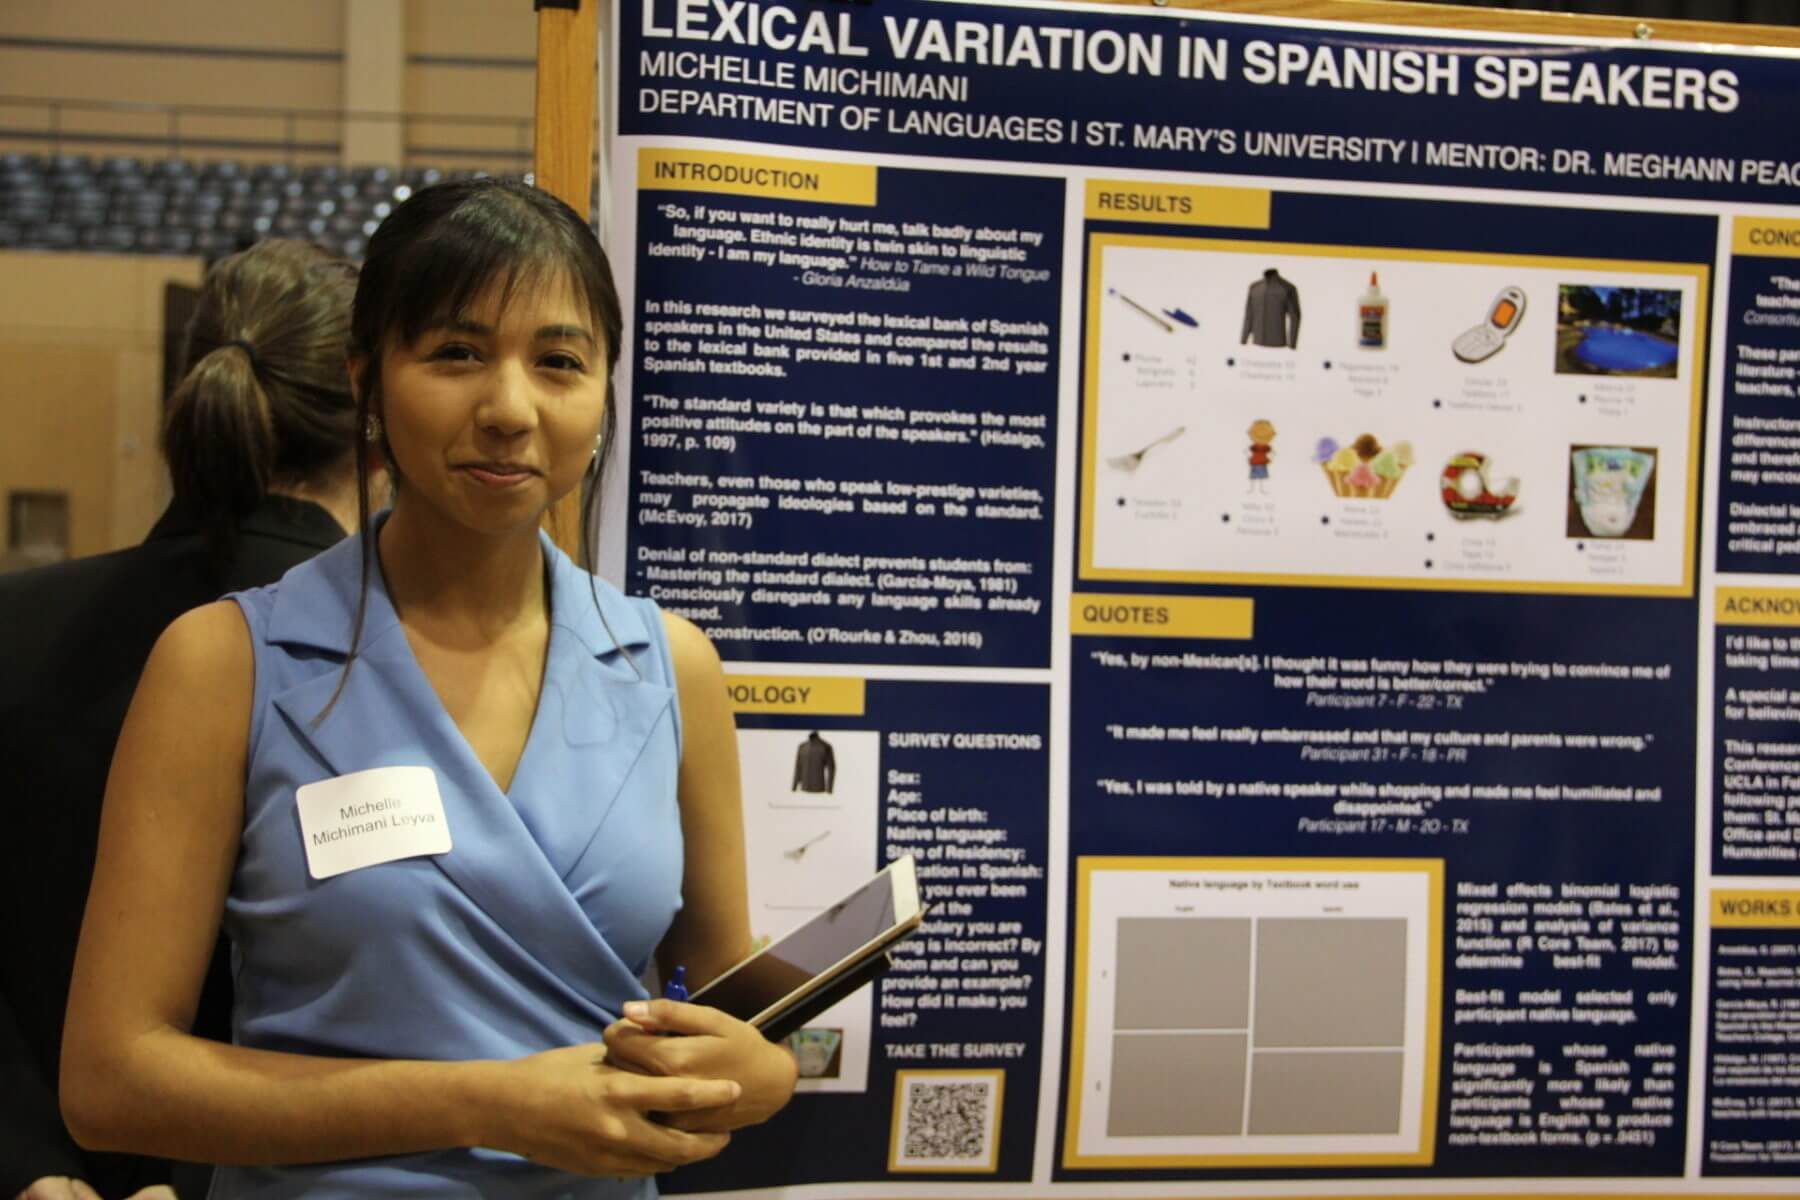 Student presents a research poster about Spanish speakers